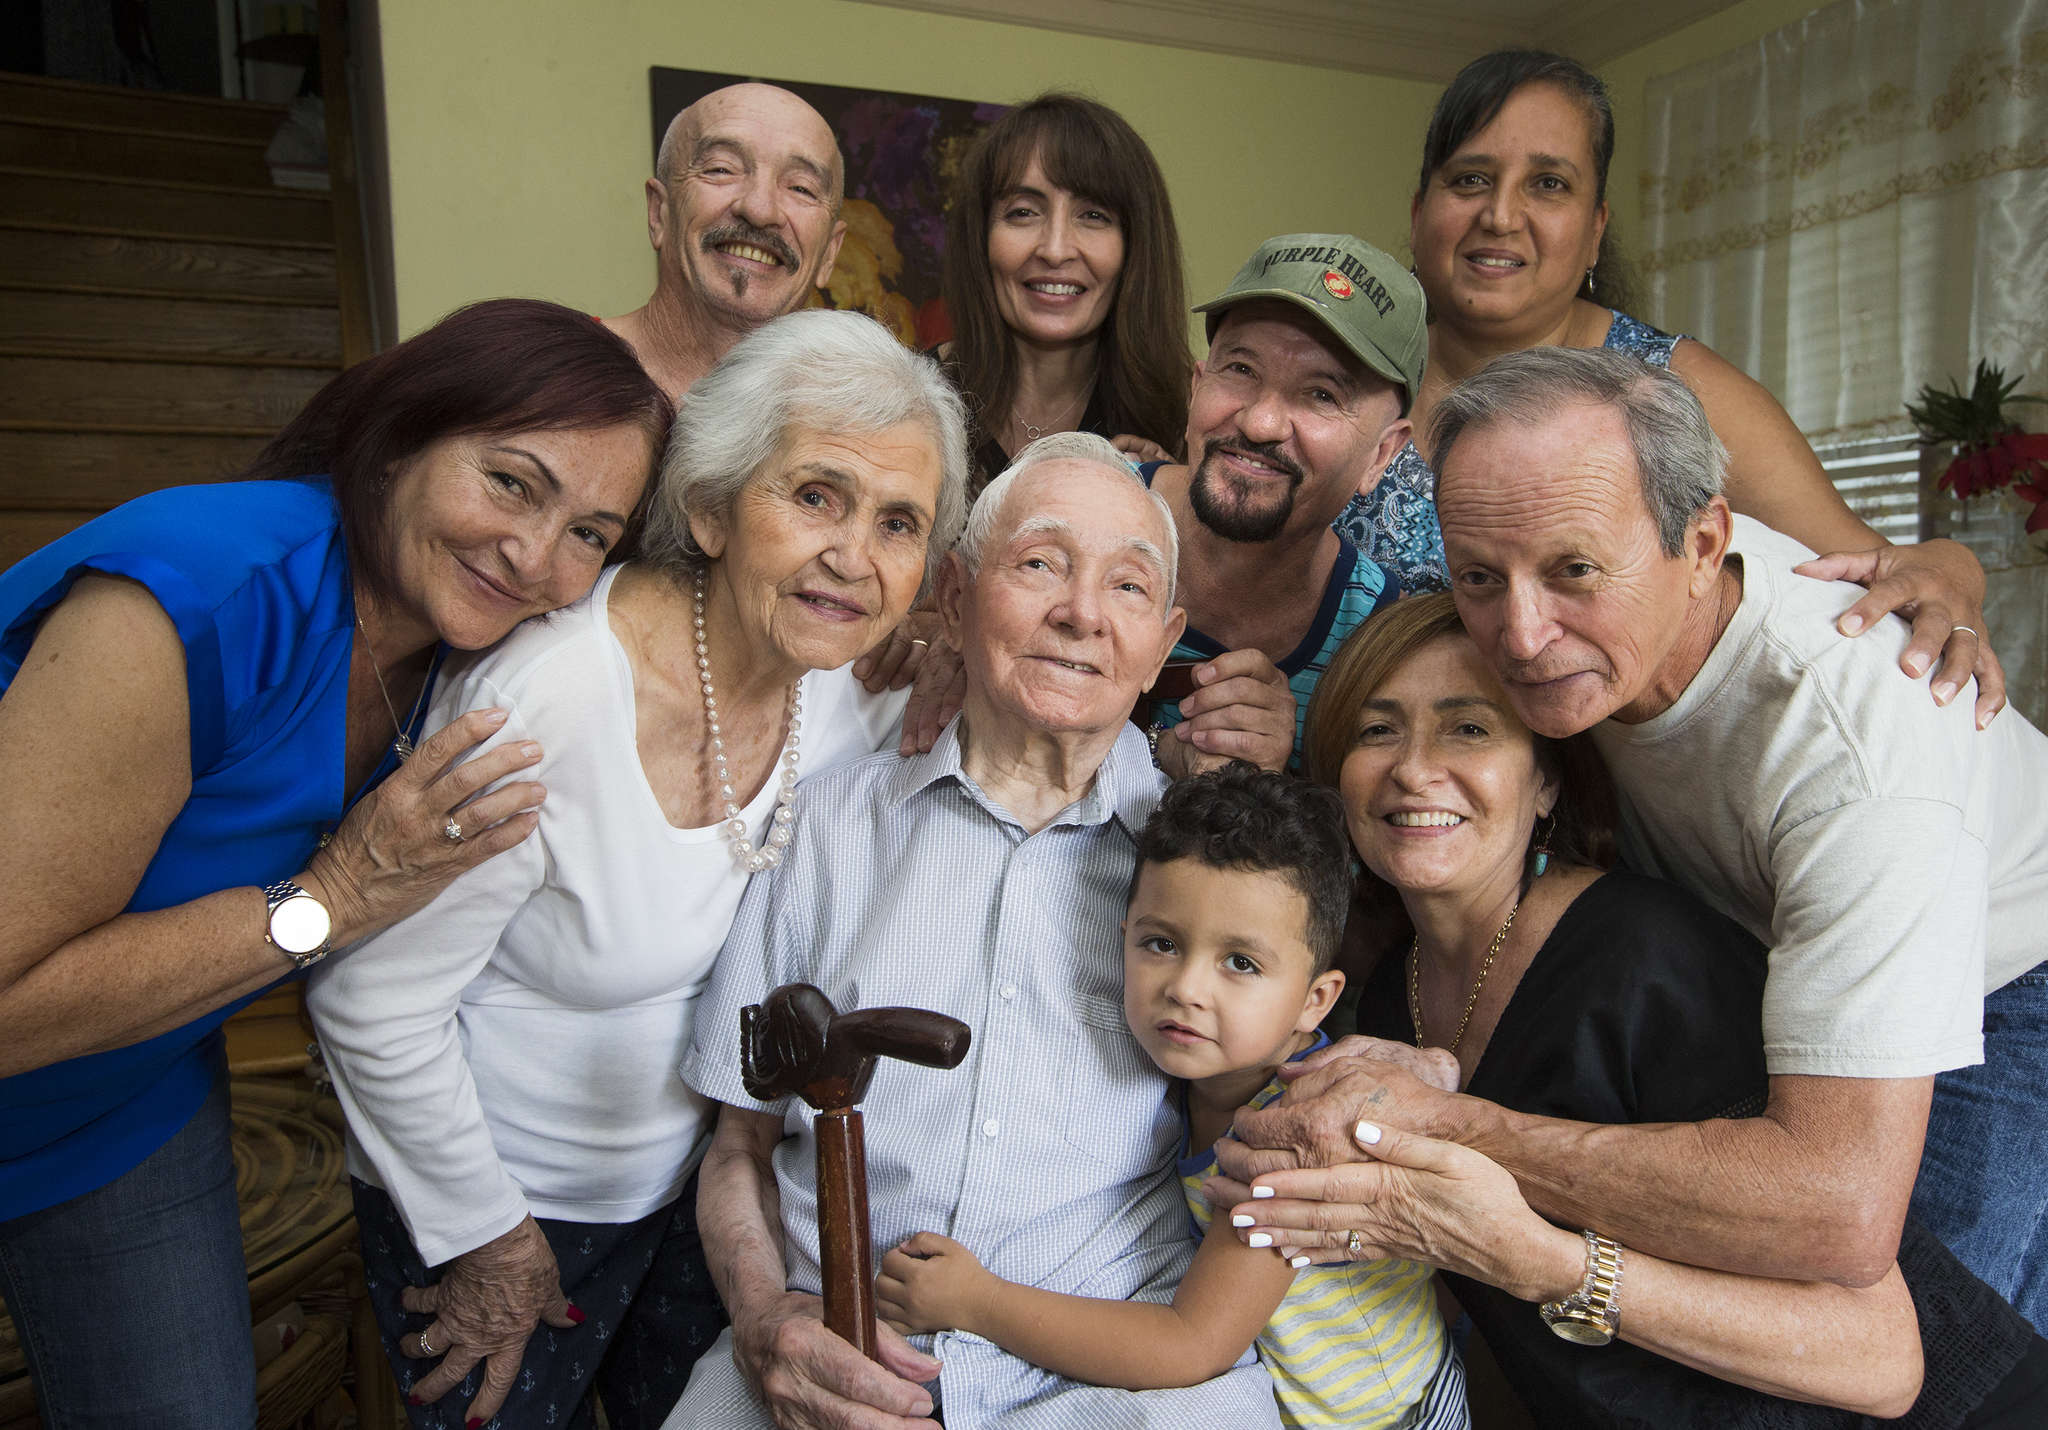 Nunez-Diaz surrounded by family members getting ready for the big day (from left): Maria Nunez, Julio Nunez Jr., wife Maria, Terry Kepler, Benny Nunez, great-grandson Jayden Nunez, Luz Nunez, Edith Nunez, and Frank Nunez.